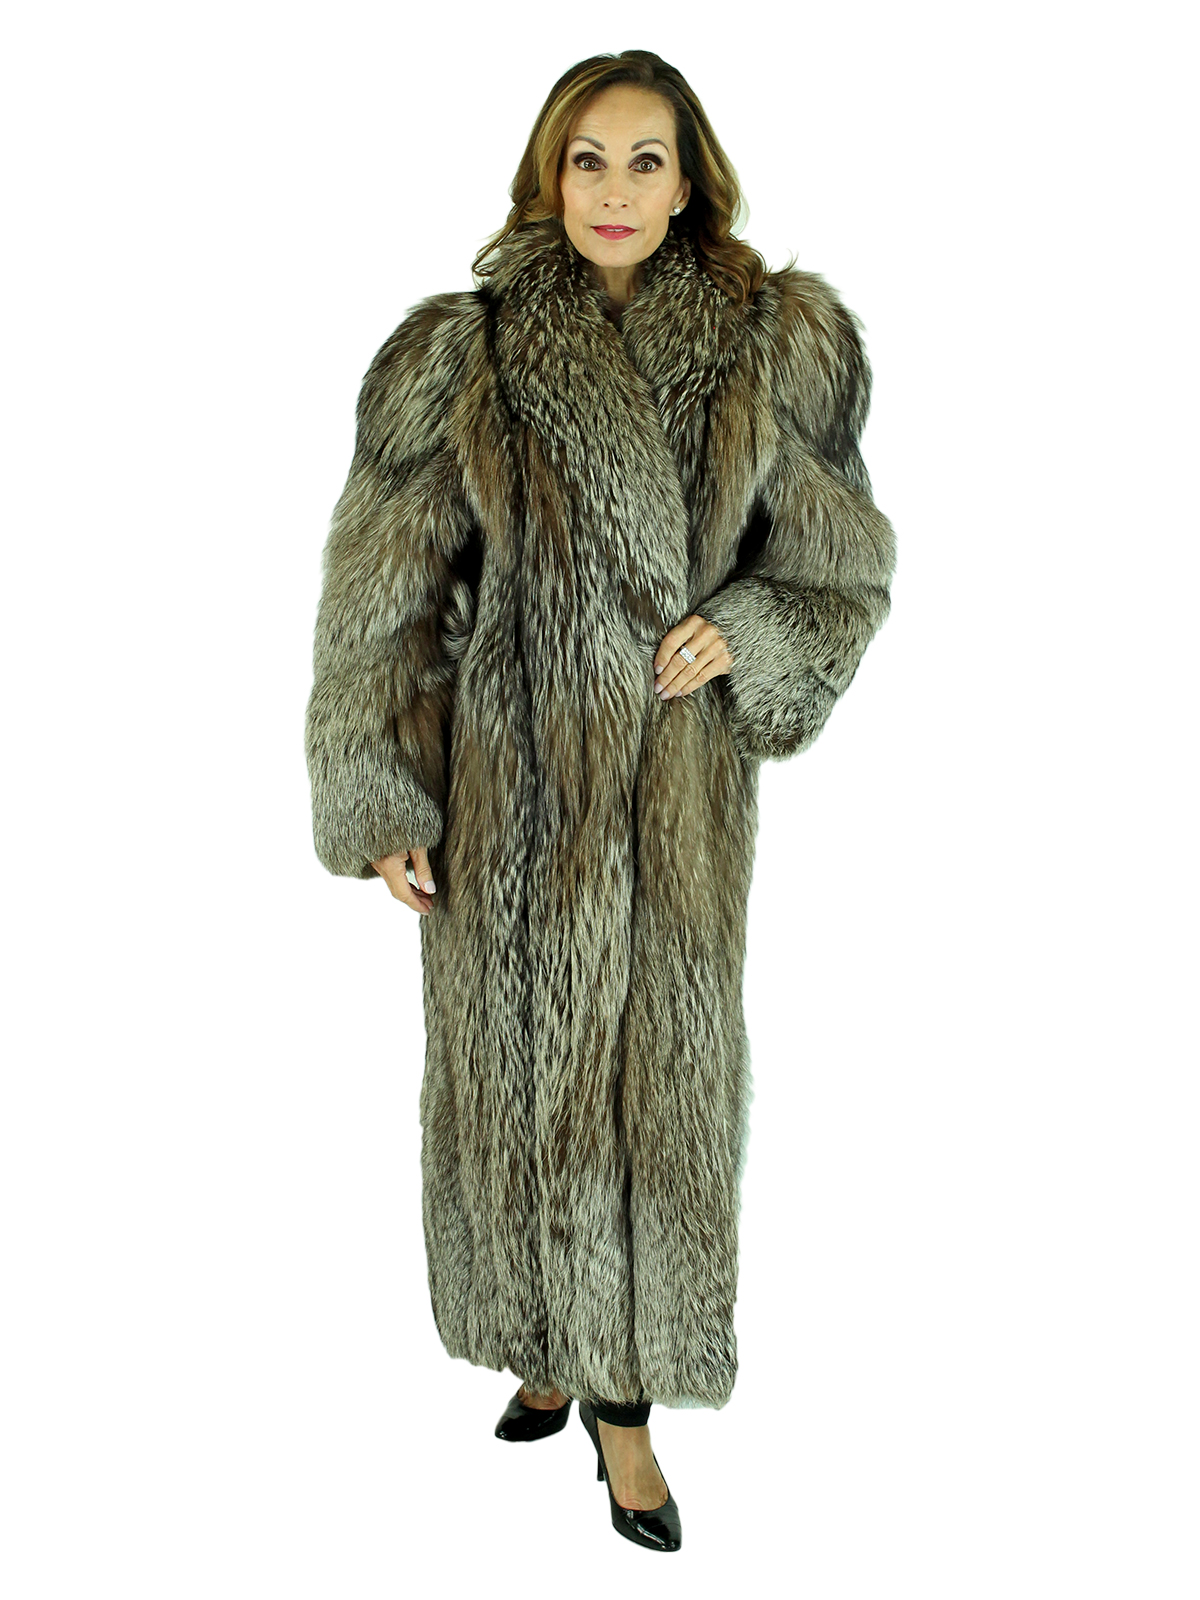 Woman's Silver Fox Fur Coat